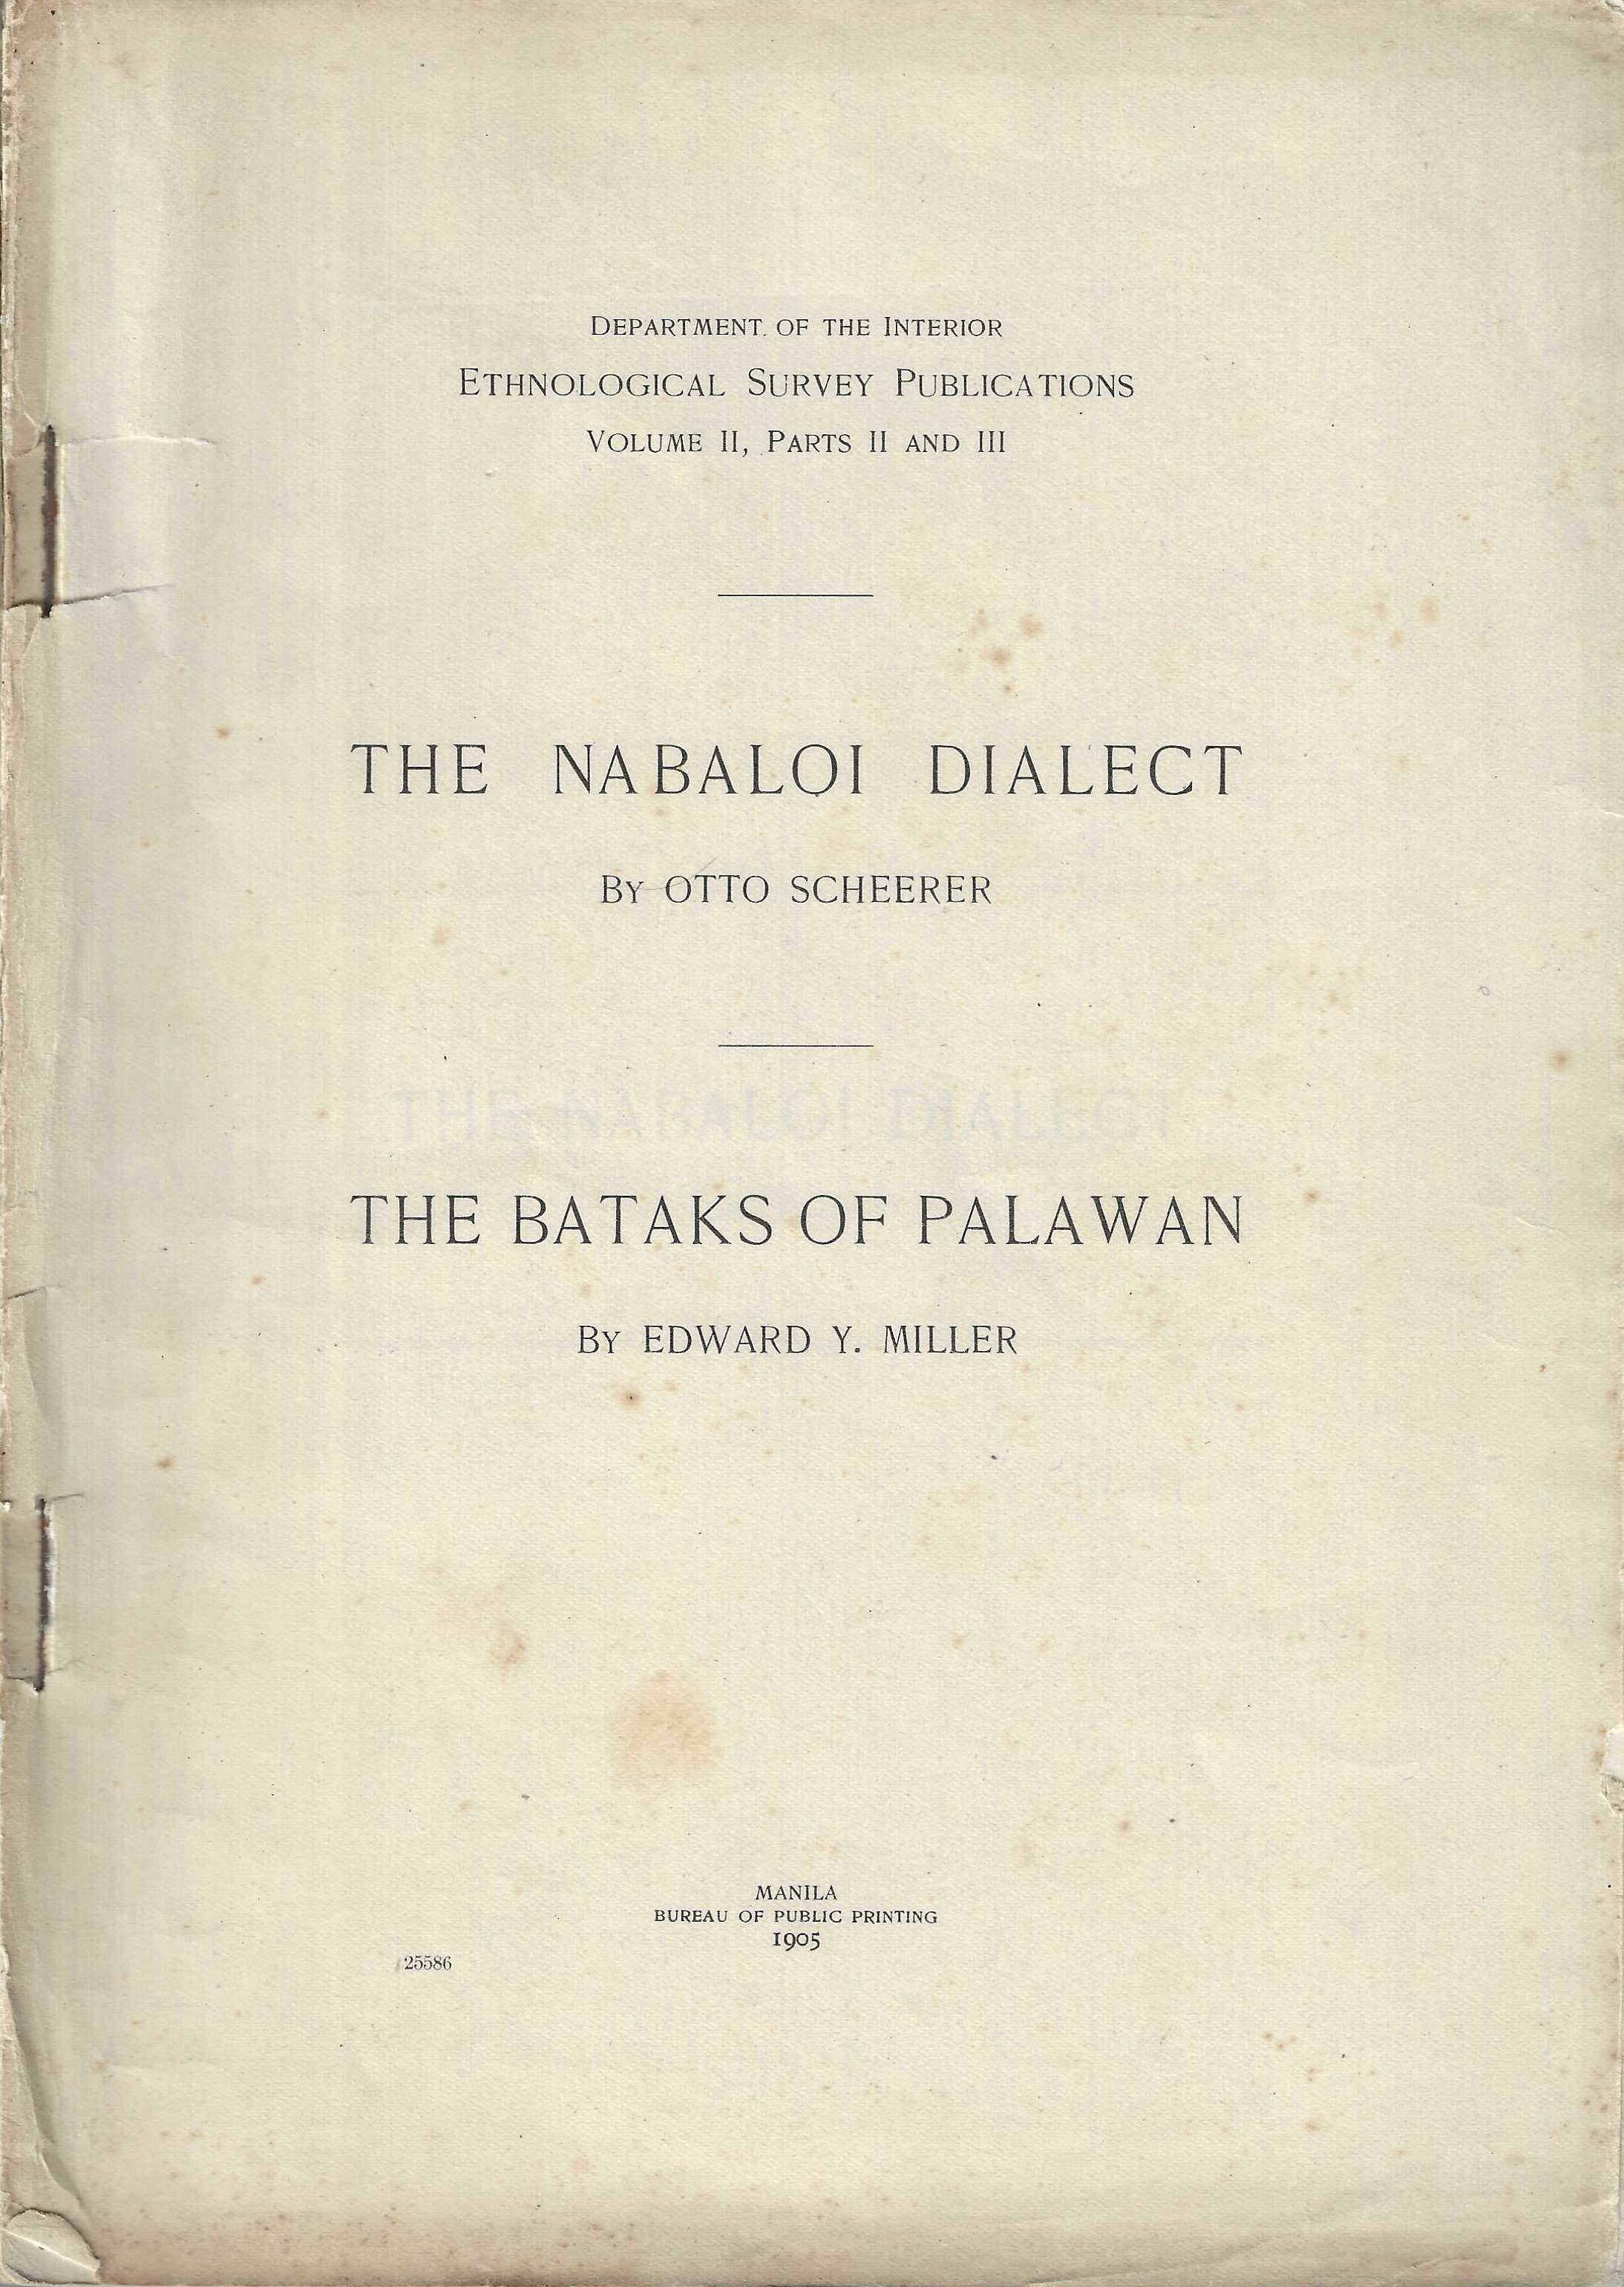 Image for The Nabaloi Dialect. The Bataks of Palawan.